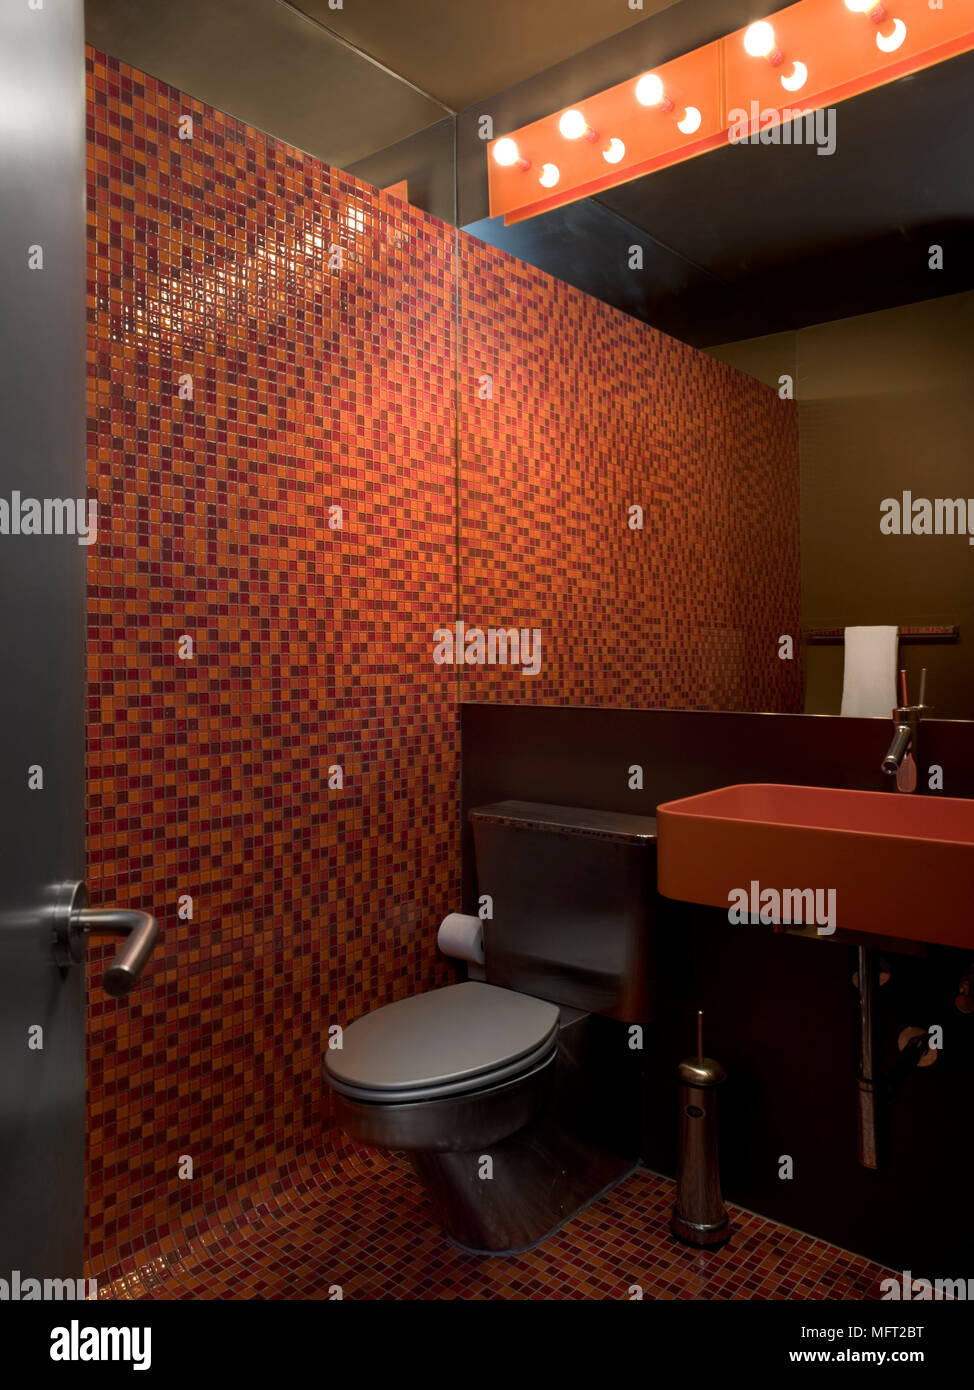 Gentil A View Through An Open Door Into A Modern, Red Bathroom, Tiled Wall,  Washbasin, Toilet, Bare Light Bulbs Set In Panel,